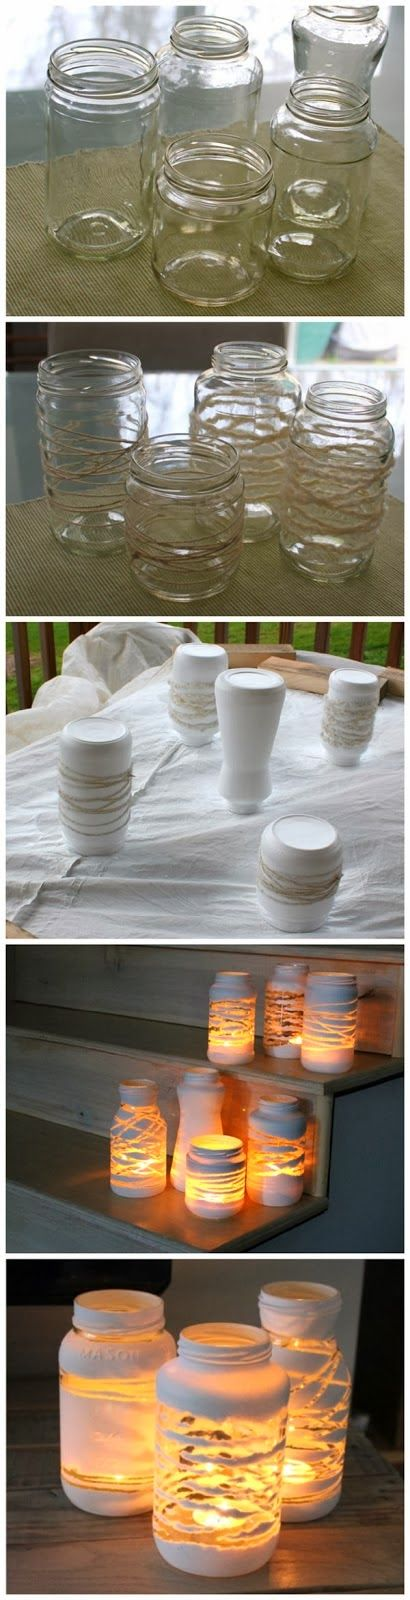 Tarros pintados envueltos en hilo. / Yarn wrapped painted jars. #jars #craft